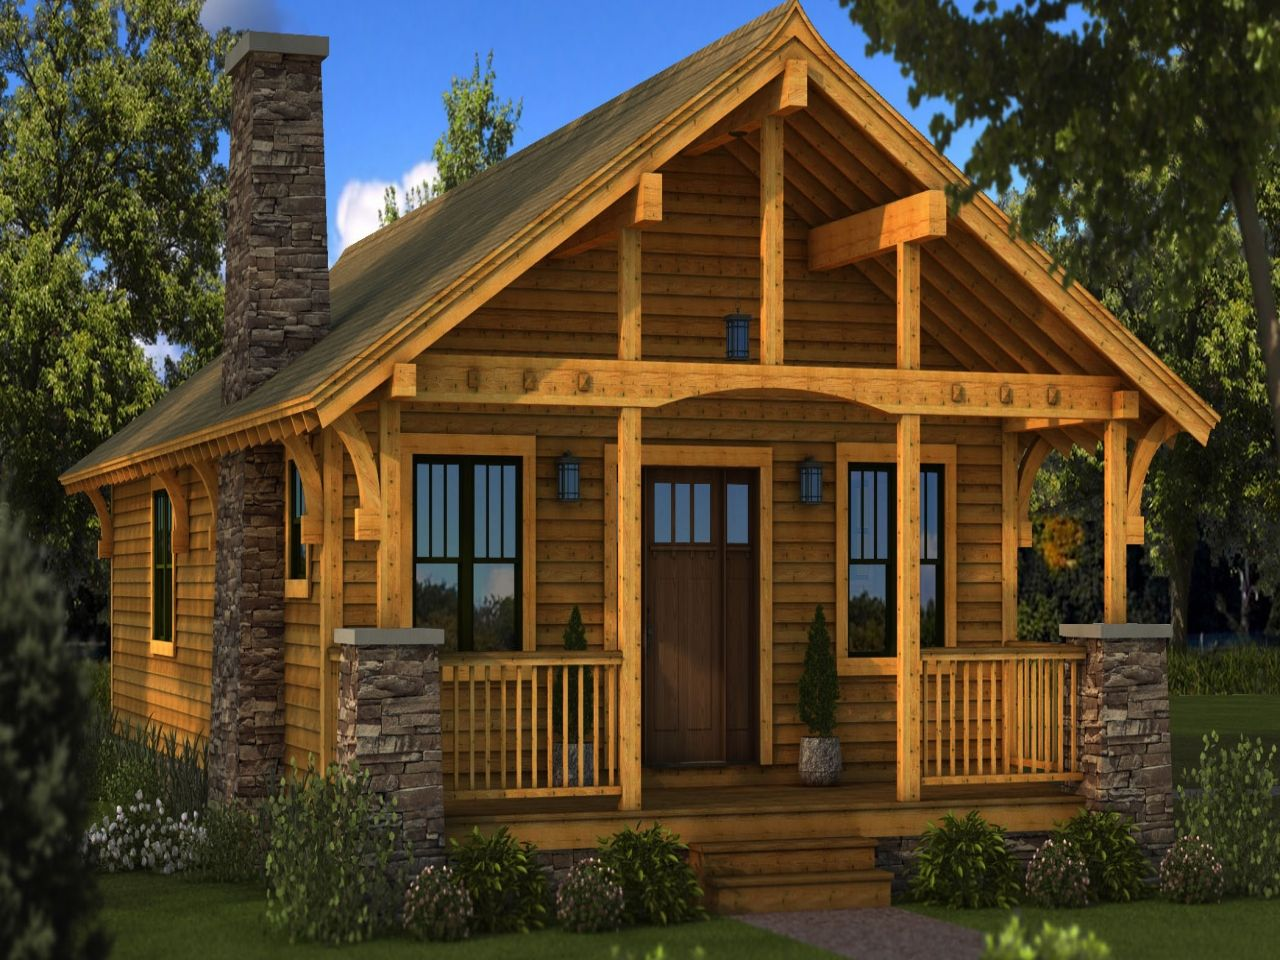 Small log cabin homes plans one story cabin plans for Cabin house plans with photos